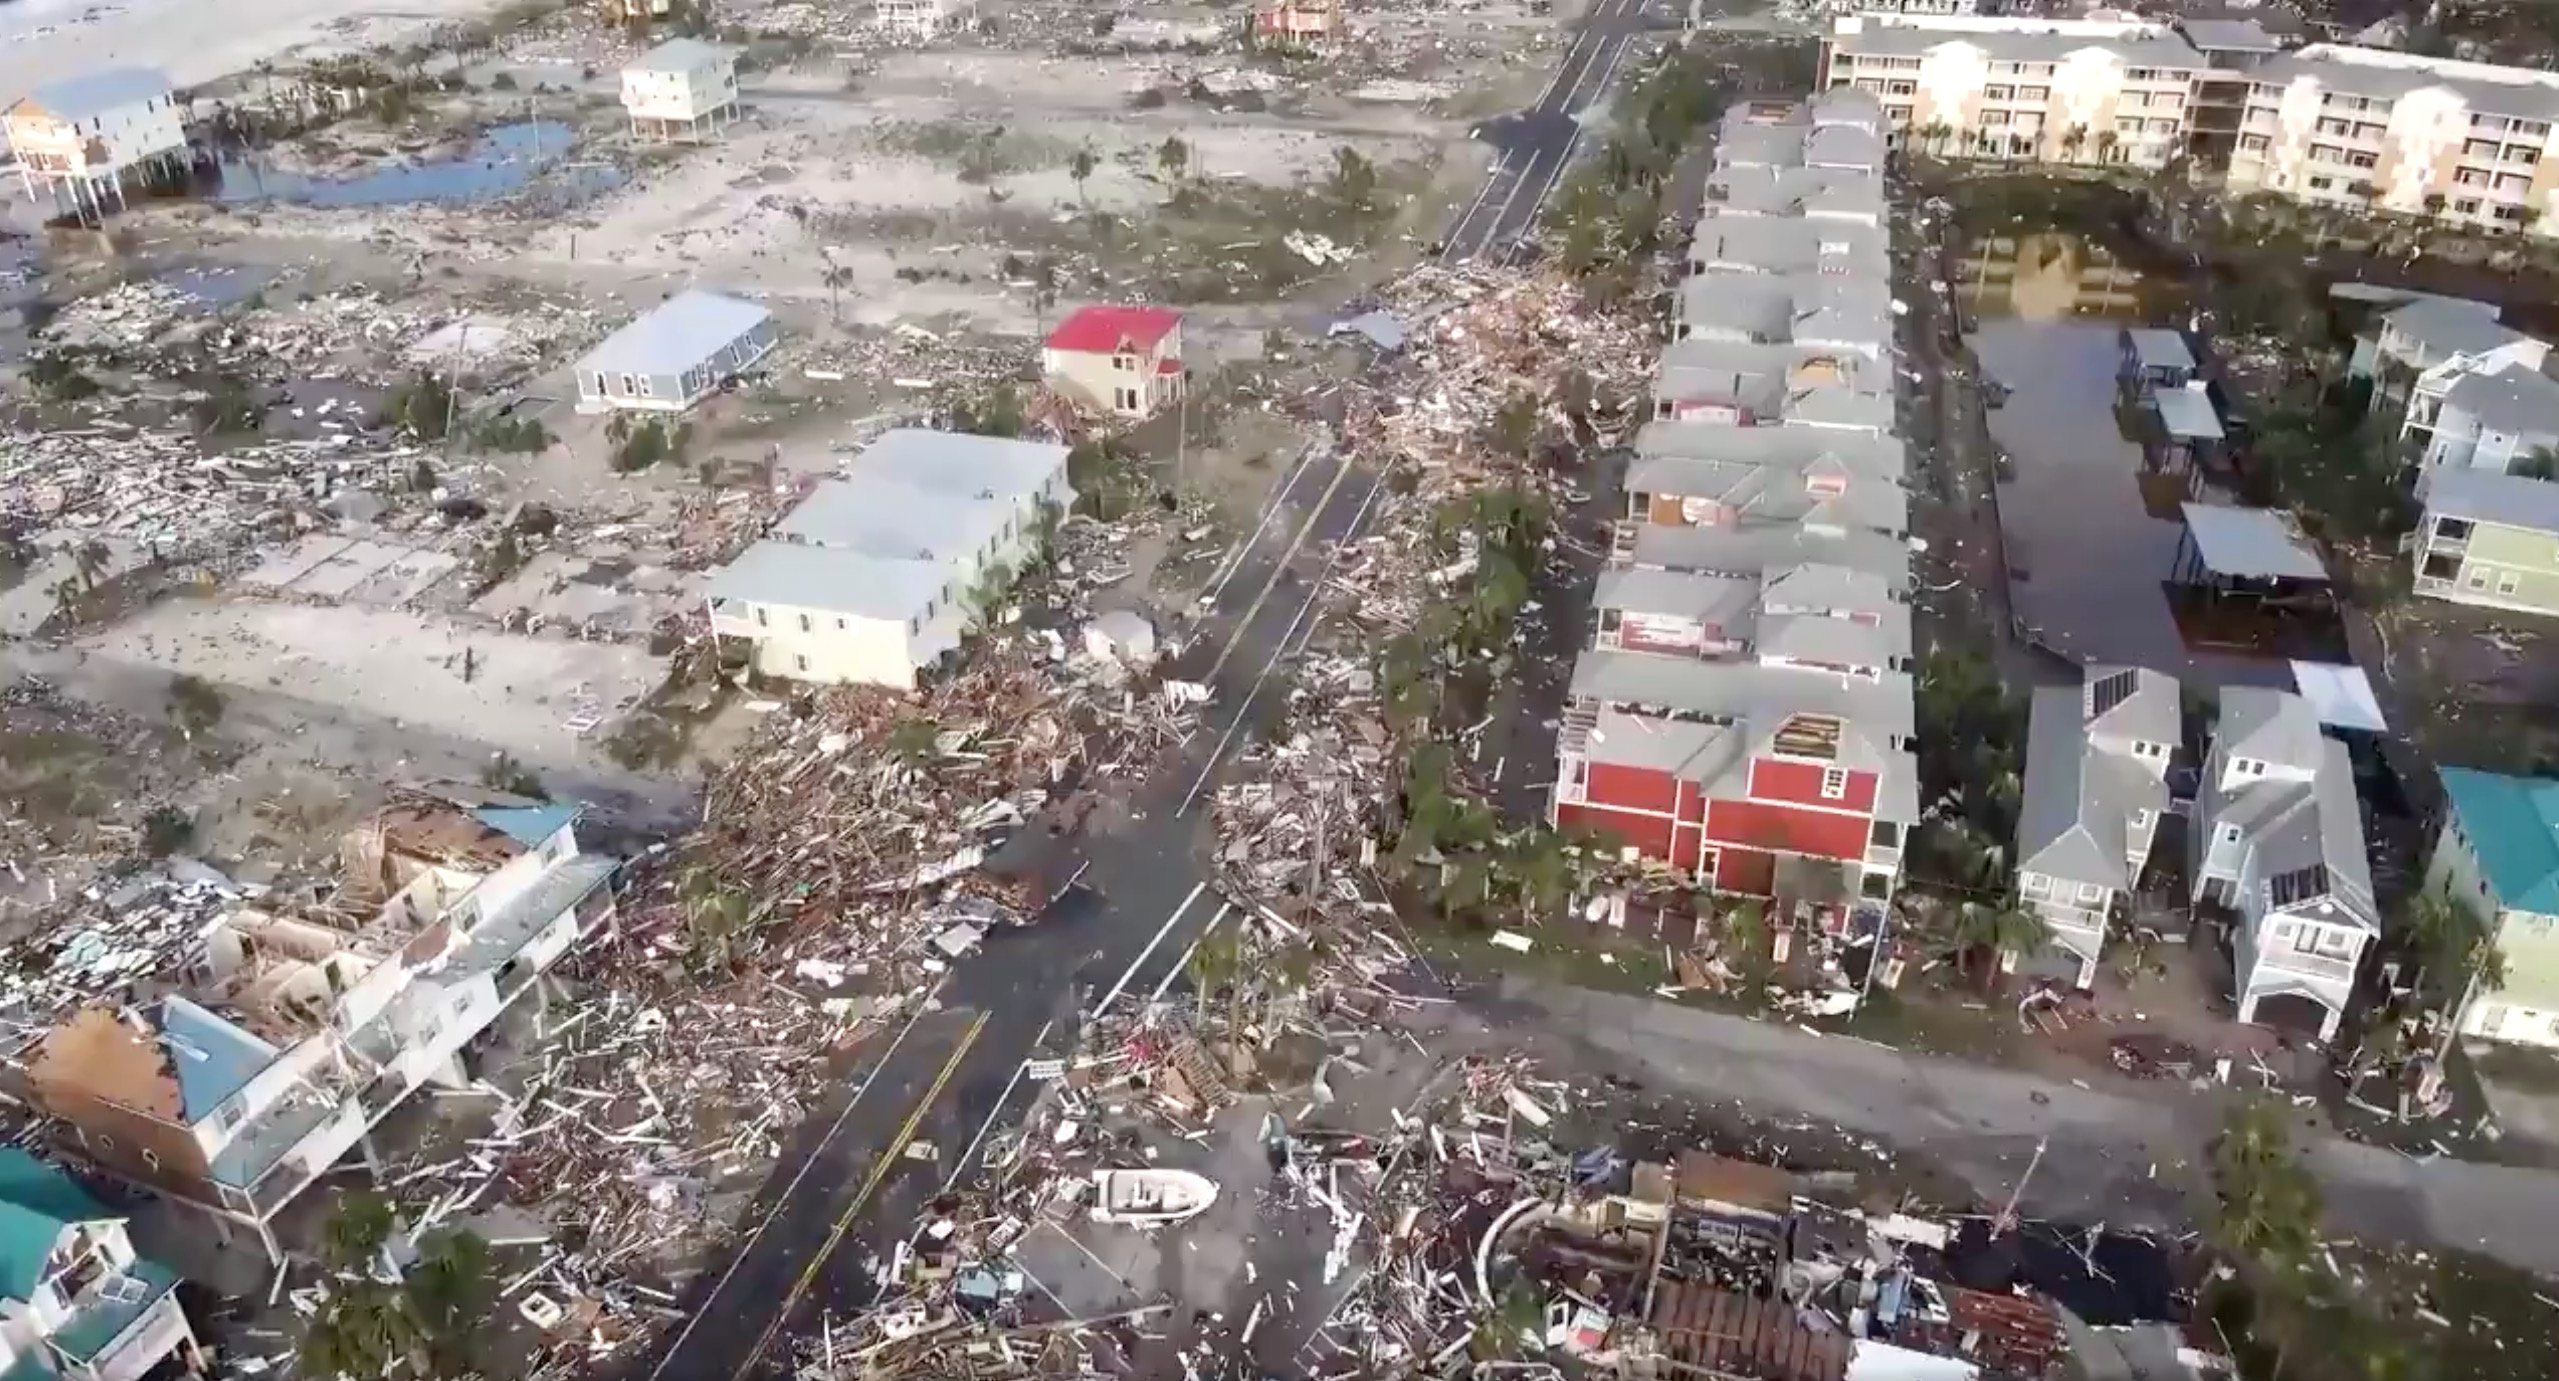 An aerial view shows debris strewn over streets after Hurricane Michael blew through Mexico Beach, Florida, U.S., October 11, 2018 in this still image taken from drone video obtained from social media.  Duke Energy/via REUTERS THIS IMAGE HAS BEEN SUPPLIED BY A THIRD PARTY. MANDATORY CREDIT. NO RESALES. NO ARCHIVES.